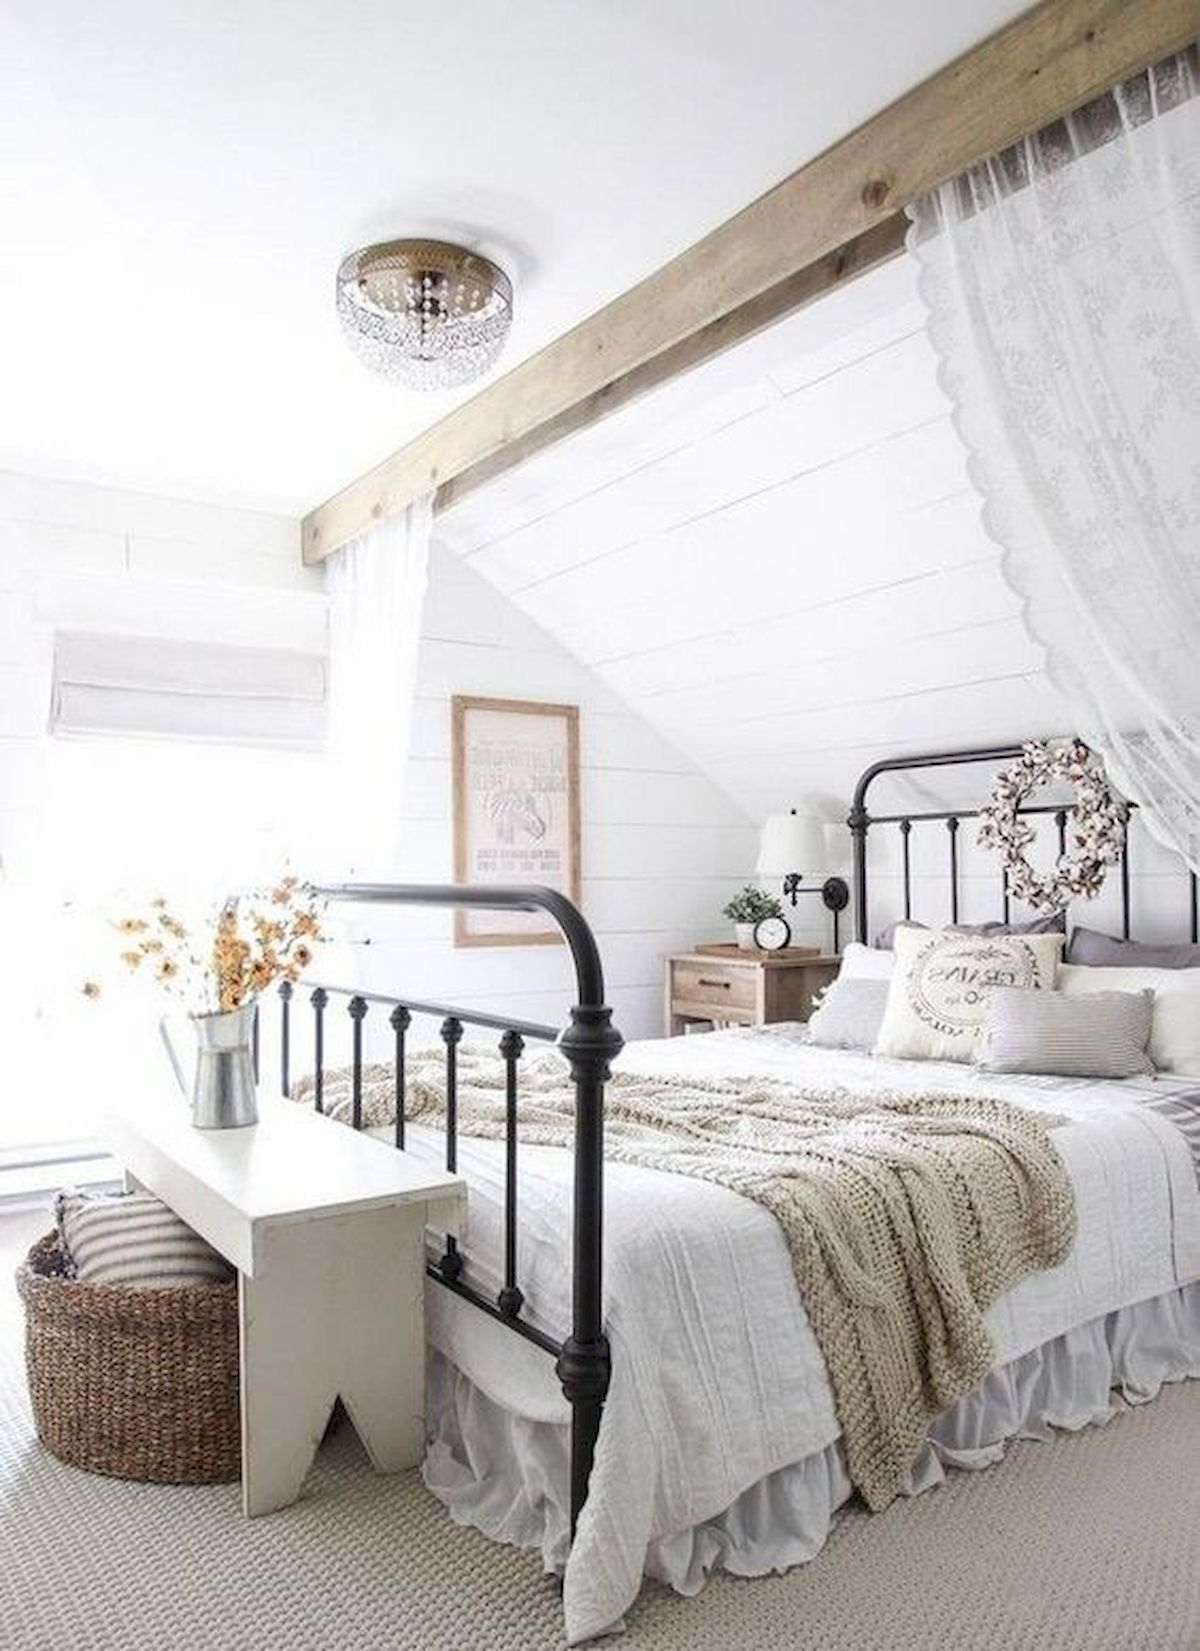 Latest Images Farmhouse Chic Bedroom Popular Farmhouse Chic Is Most Of The Rag In 2021 Farmhouse Style Master Bedroom Modern Farmhouse Bedroom Farmhouse Style Bedrooms